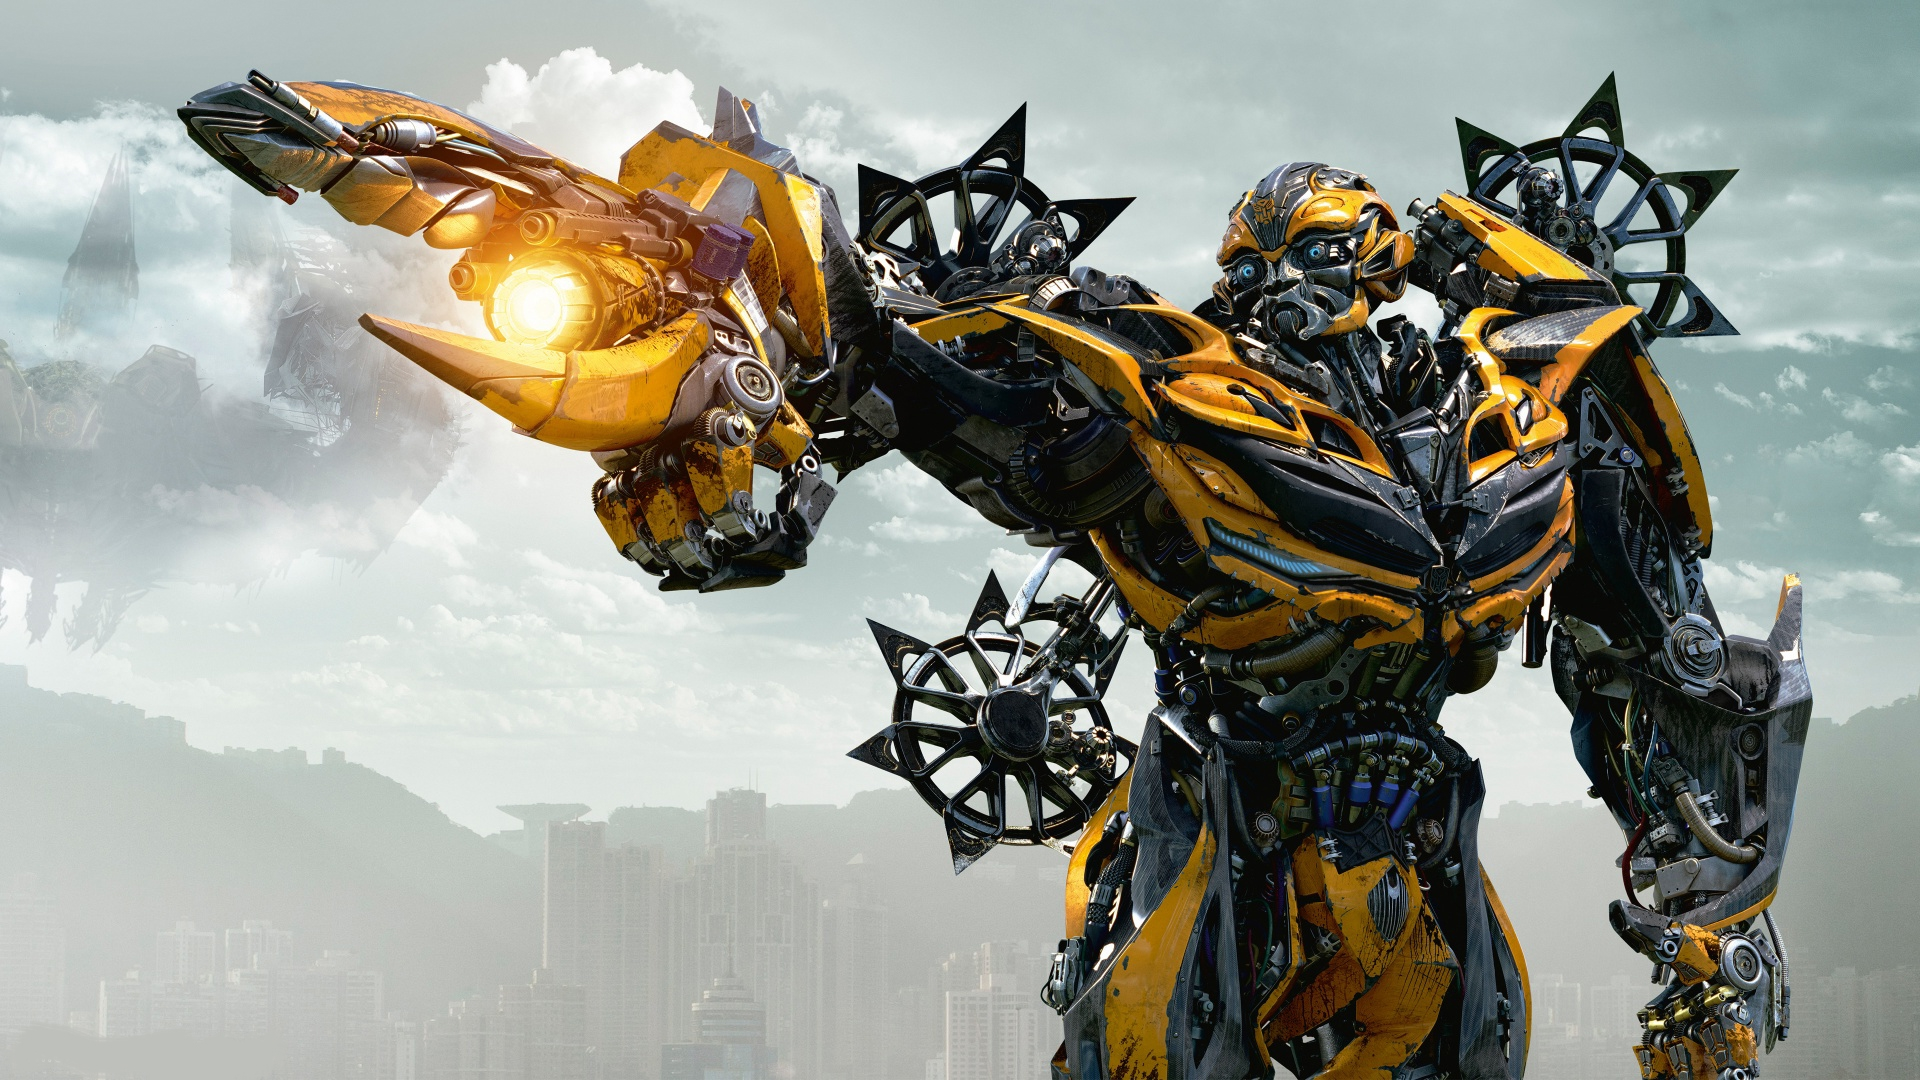 Free 3d Hulk Wallpaper Bumblebee Wallpapers Free Download